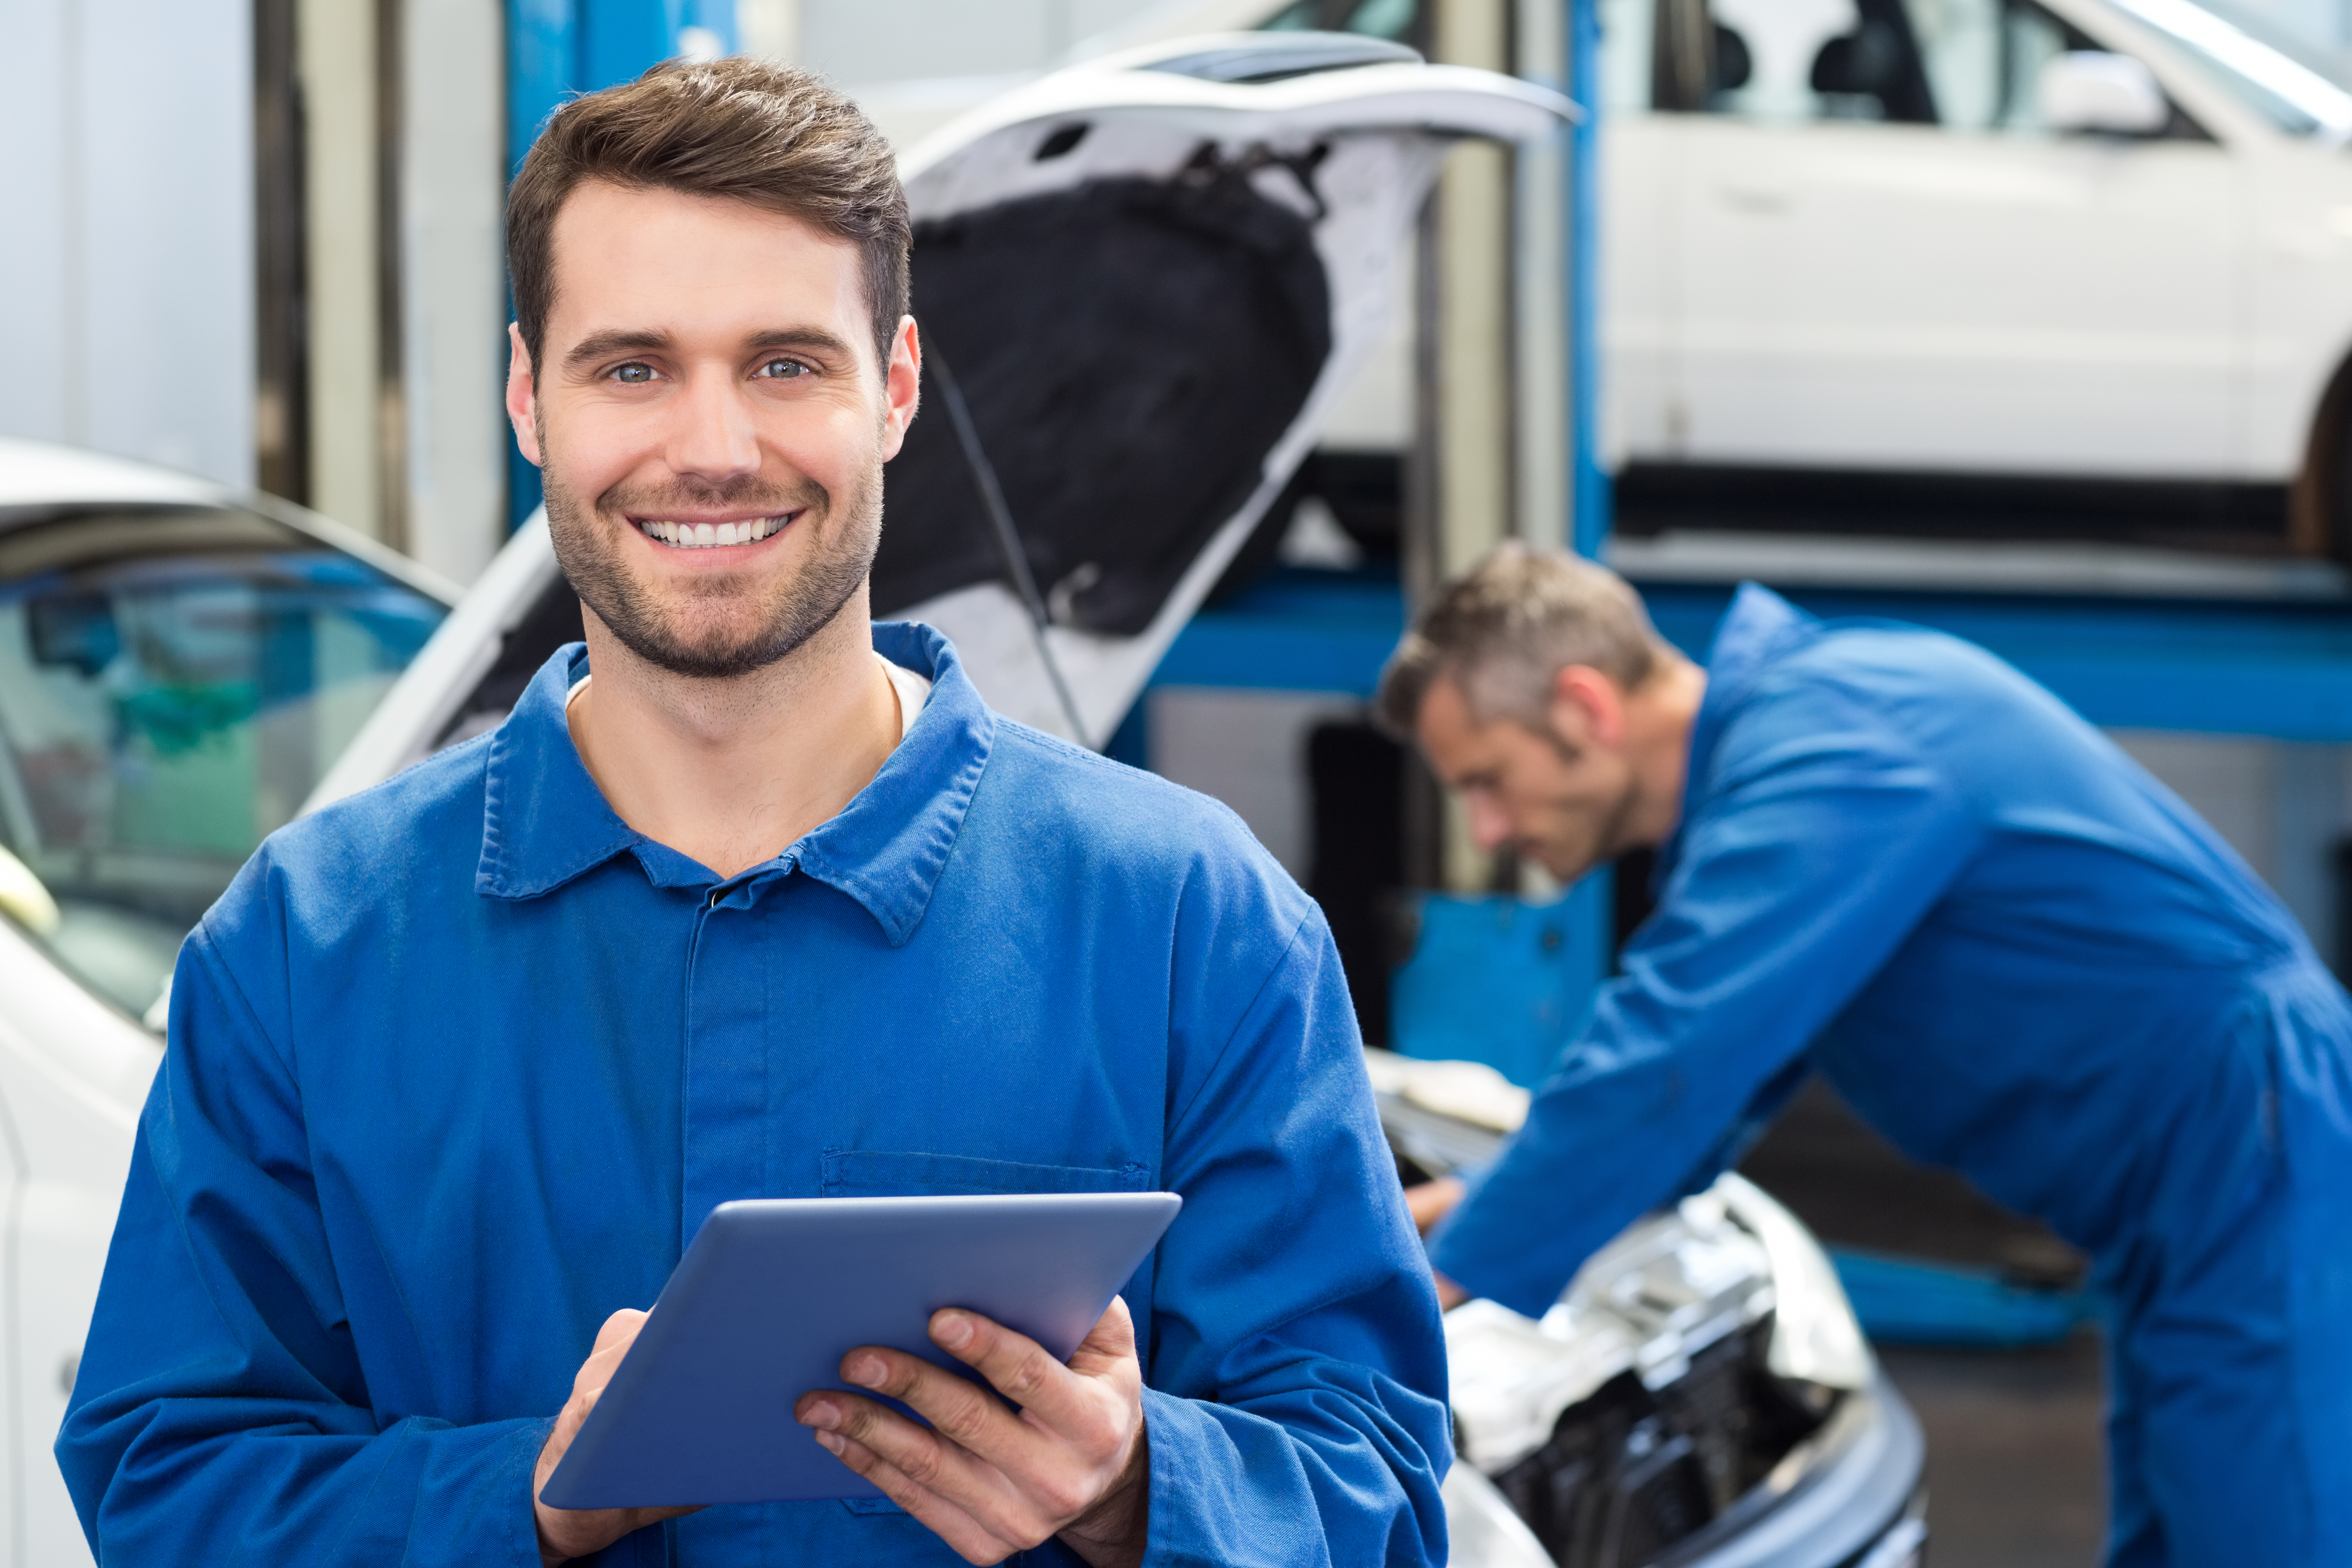 Image of a smiling mechanic using a tablet in a workshop